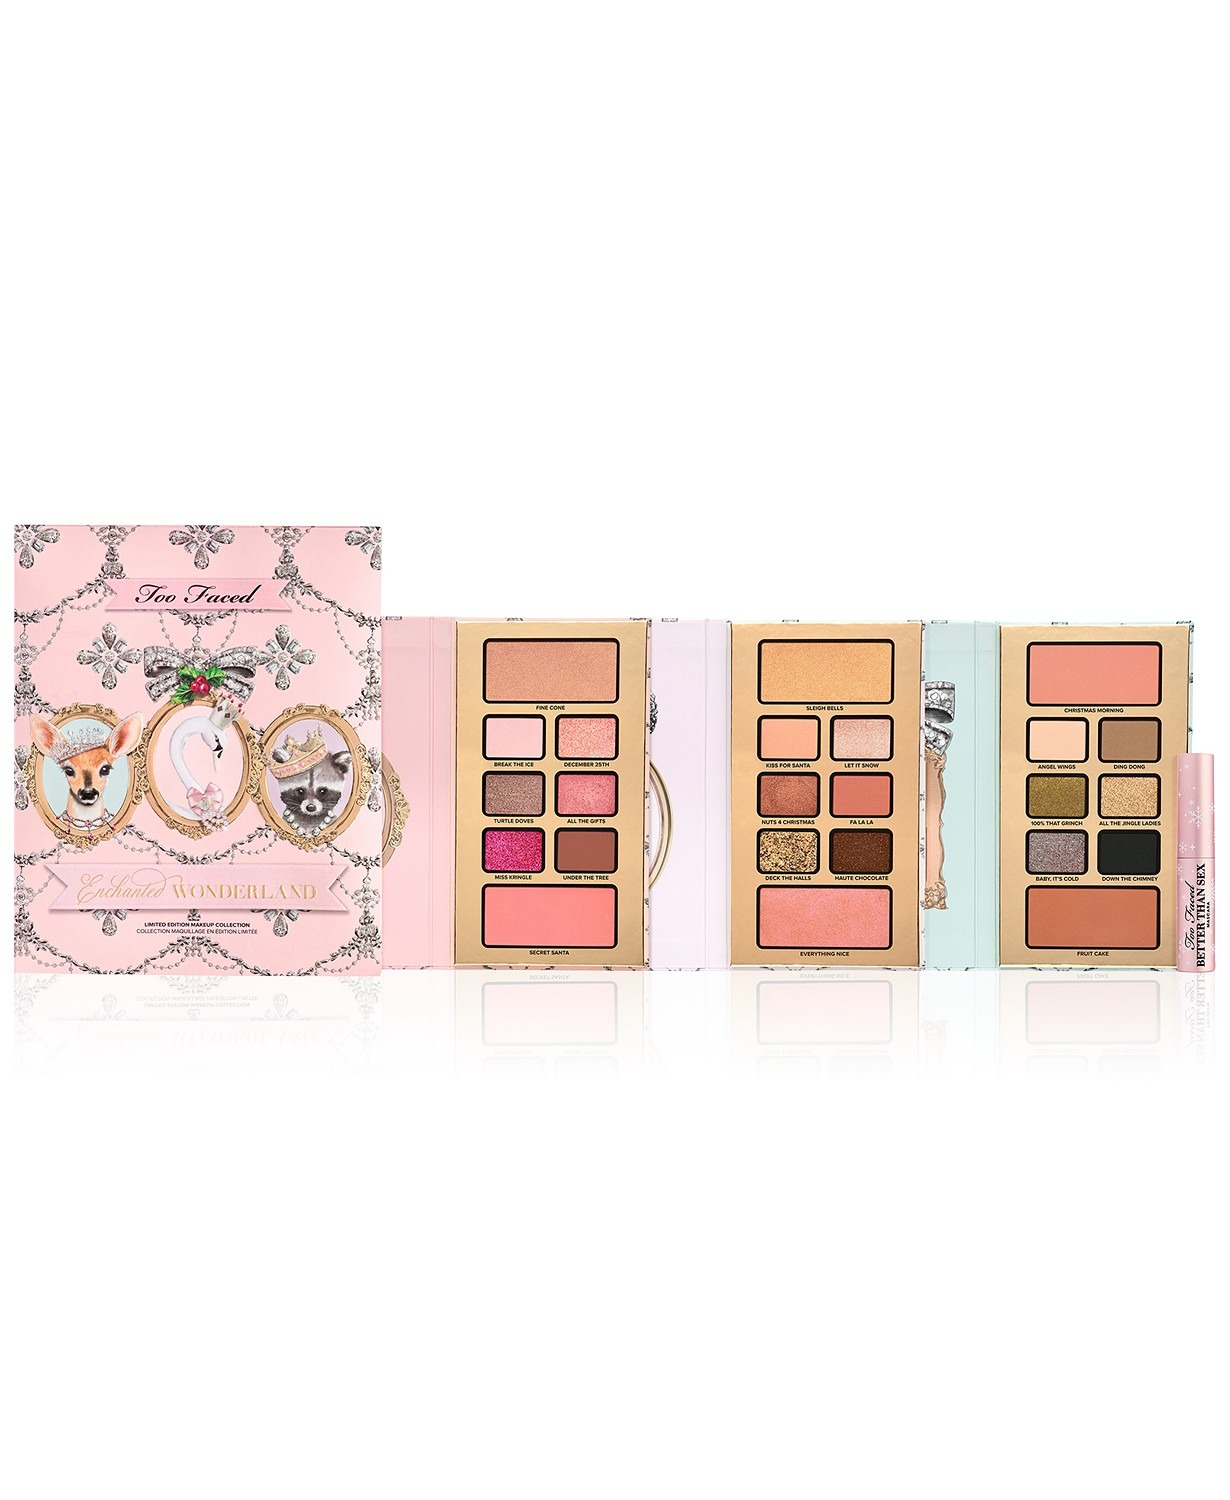 Too Faced Four Piece Enchanted Wonderland Makeup Set